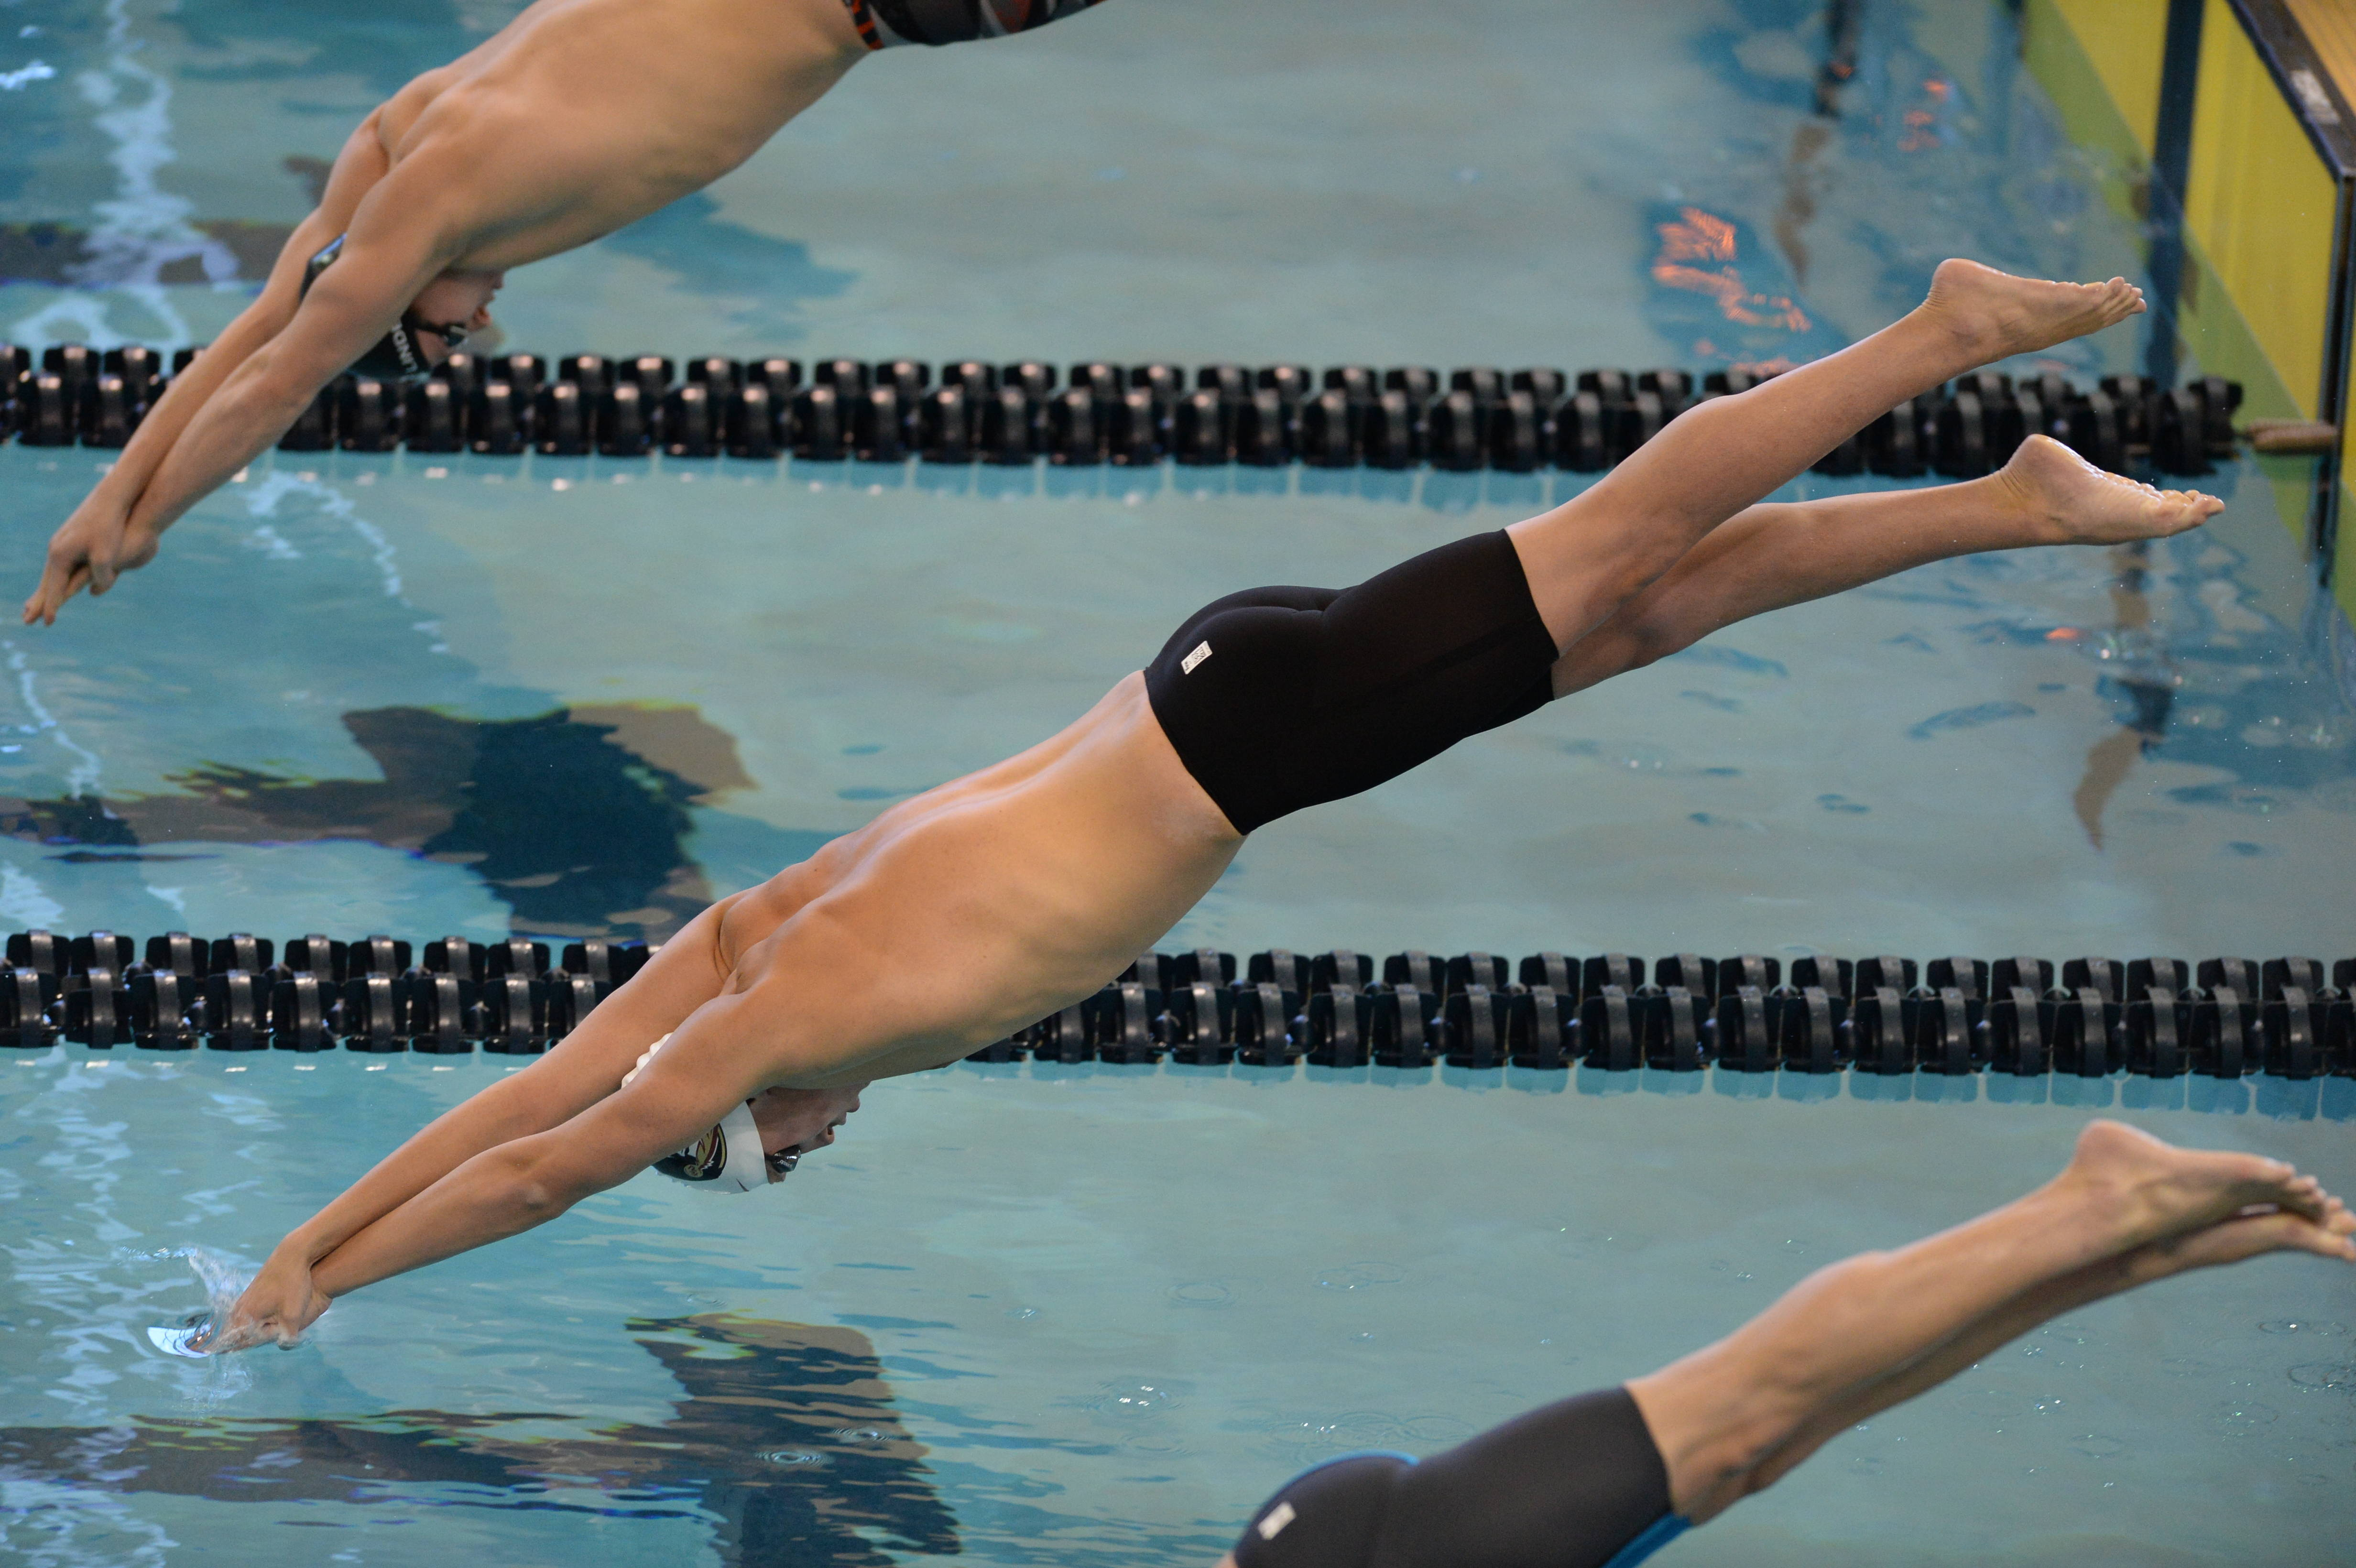 Anthony Lyons takes off for the 200 free - Mitch White